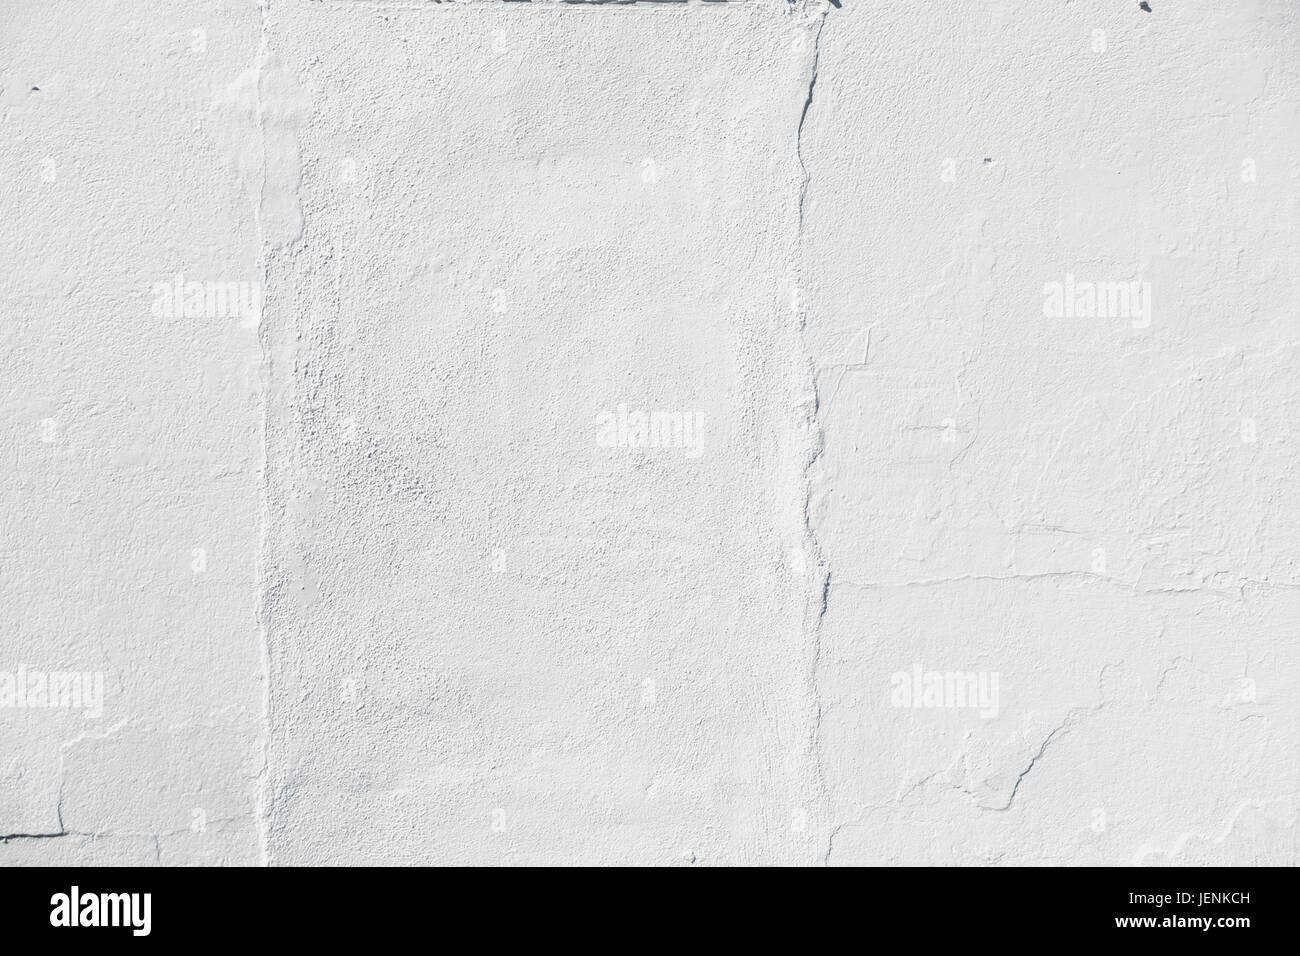 white painted stucco wall with cracks - Stock Image